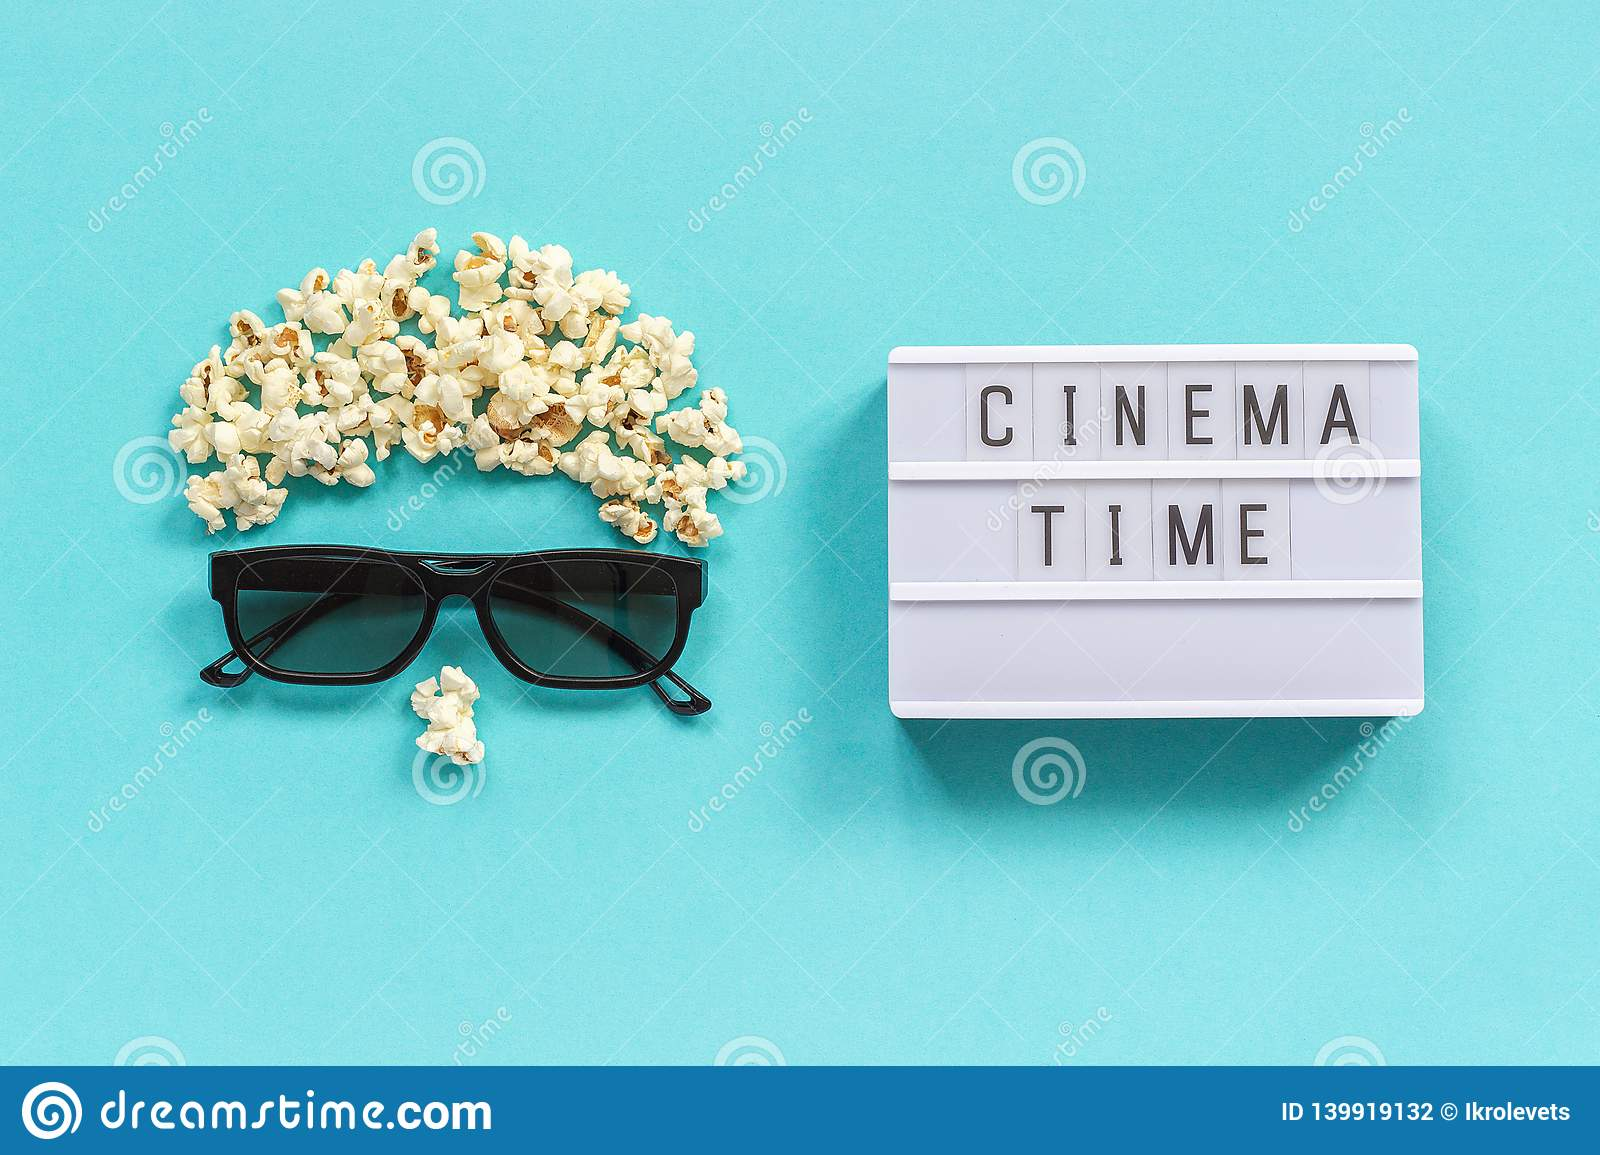 Abstract image of viewer, 3D glasses, popcorn and light box text Cinema time on blue paper background. Concept cinema movie and